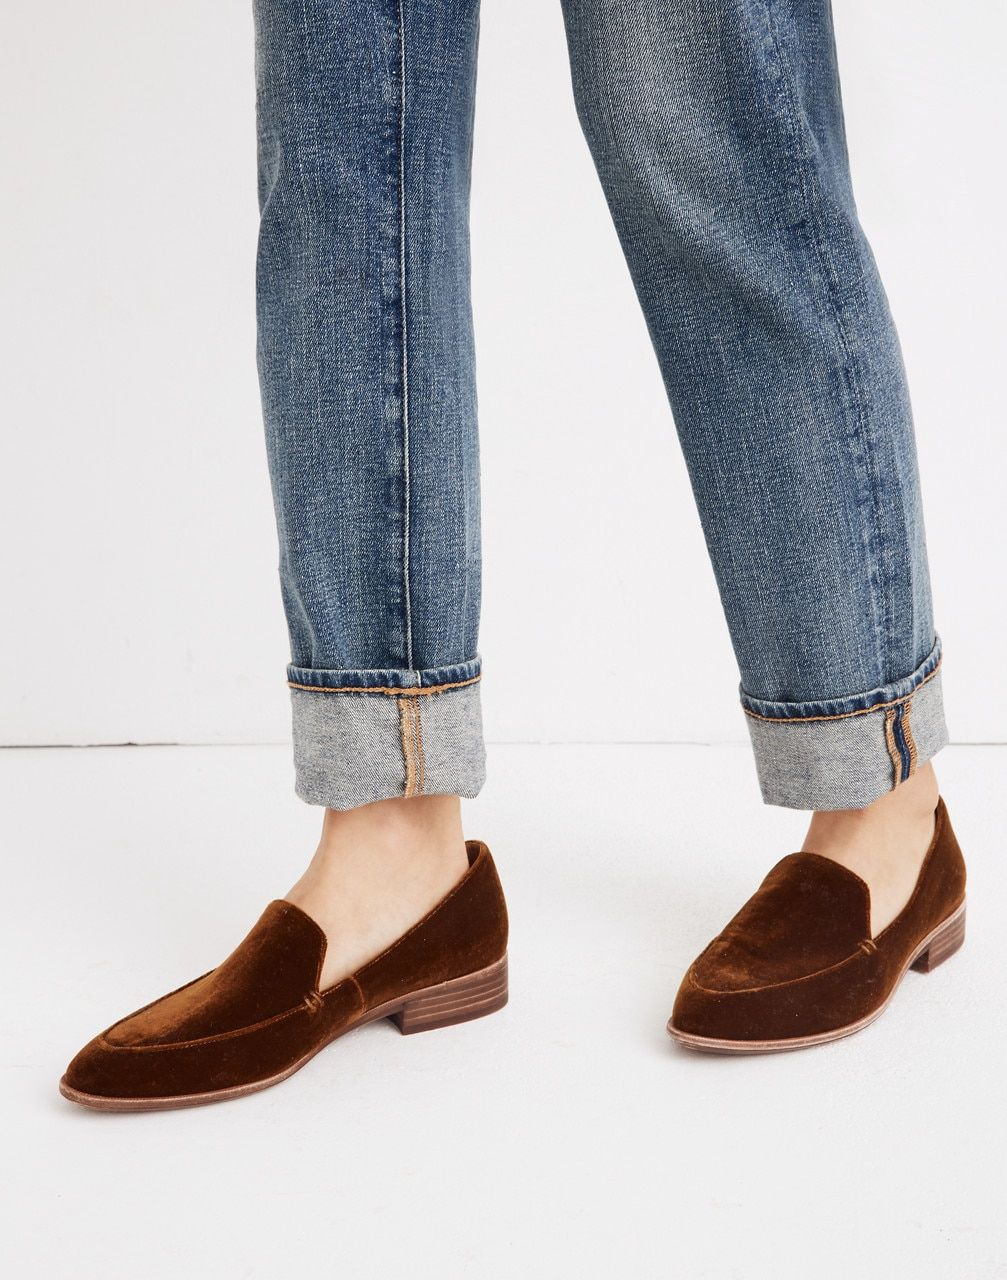 super popular 5ac1b c3ad9 The Frances Loafer in Velvet in burnished cedar image 2 Minimalist Shoes,  Minimalist Clothing,